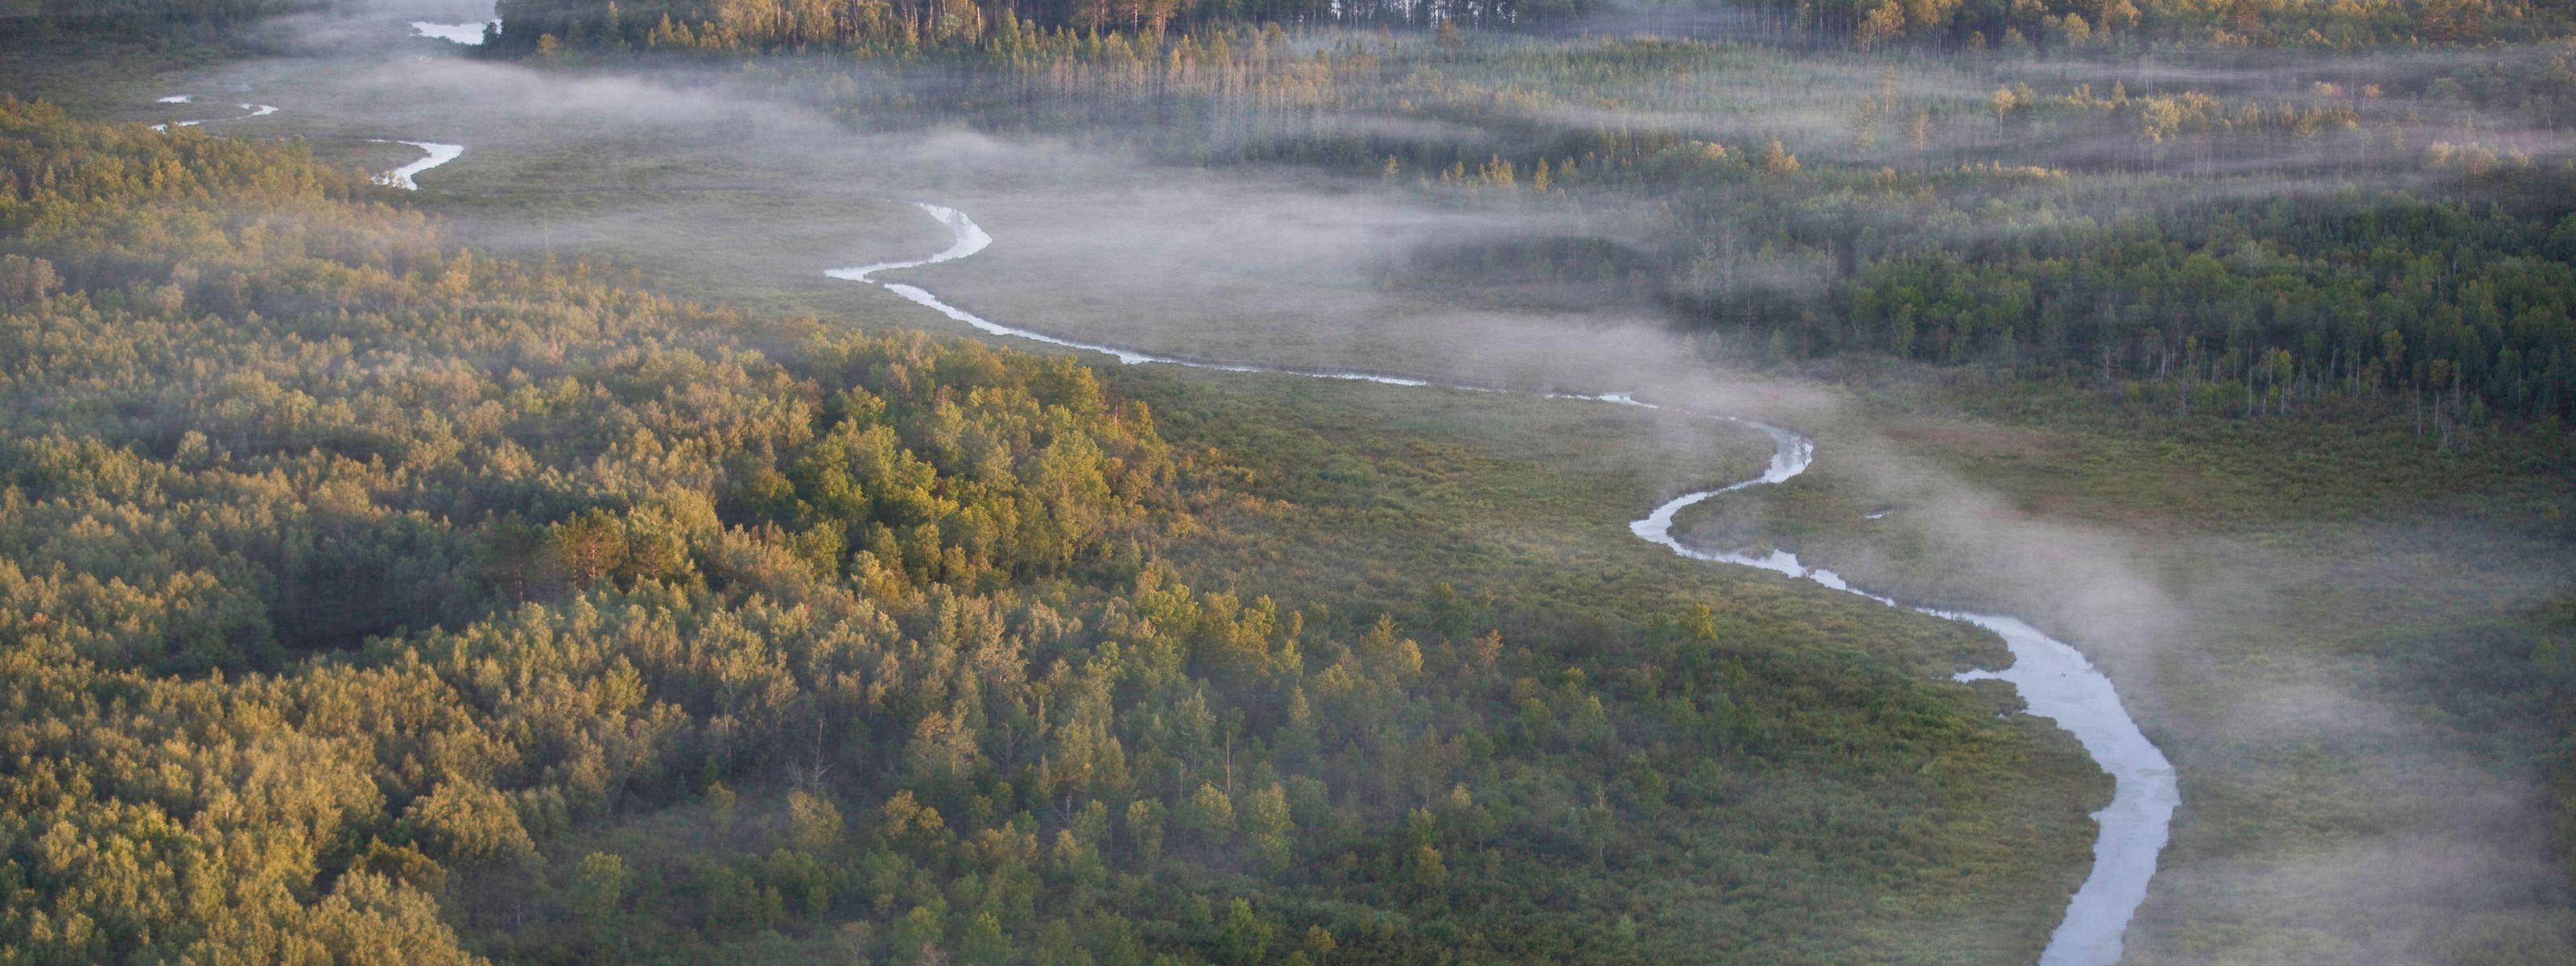 Aerial view of Split Hand Creek in UPM/Blandin forest land in Itasca County, Minnesota. The Upper Mississippi Forest project is the largest conservation effort ever undertaken by the state of Minnesota and one of the first and most significant accomplishm